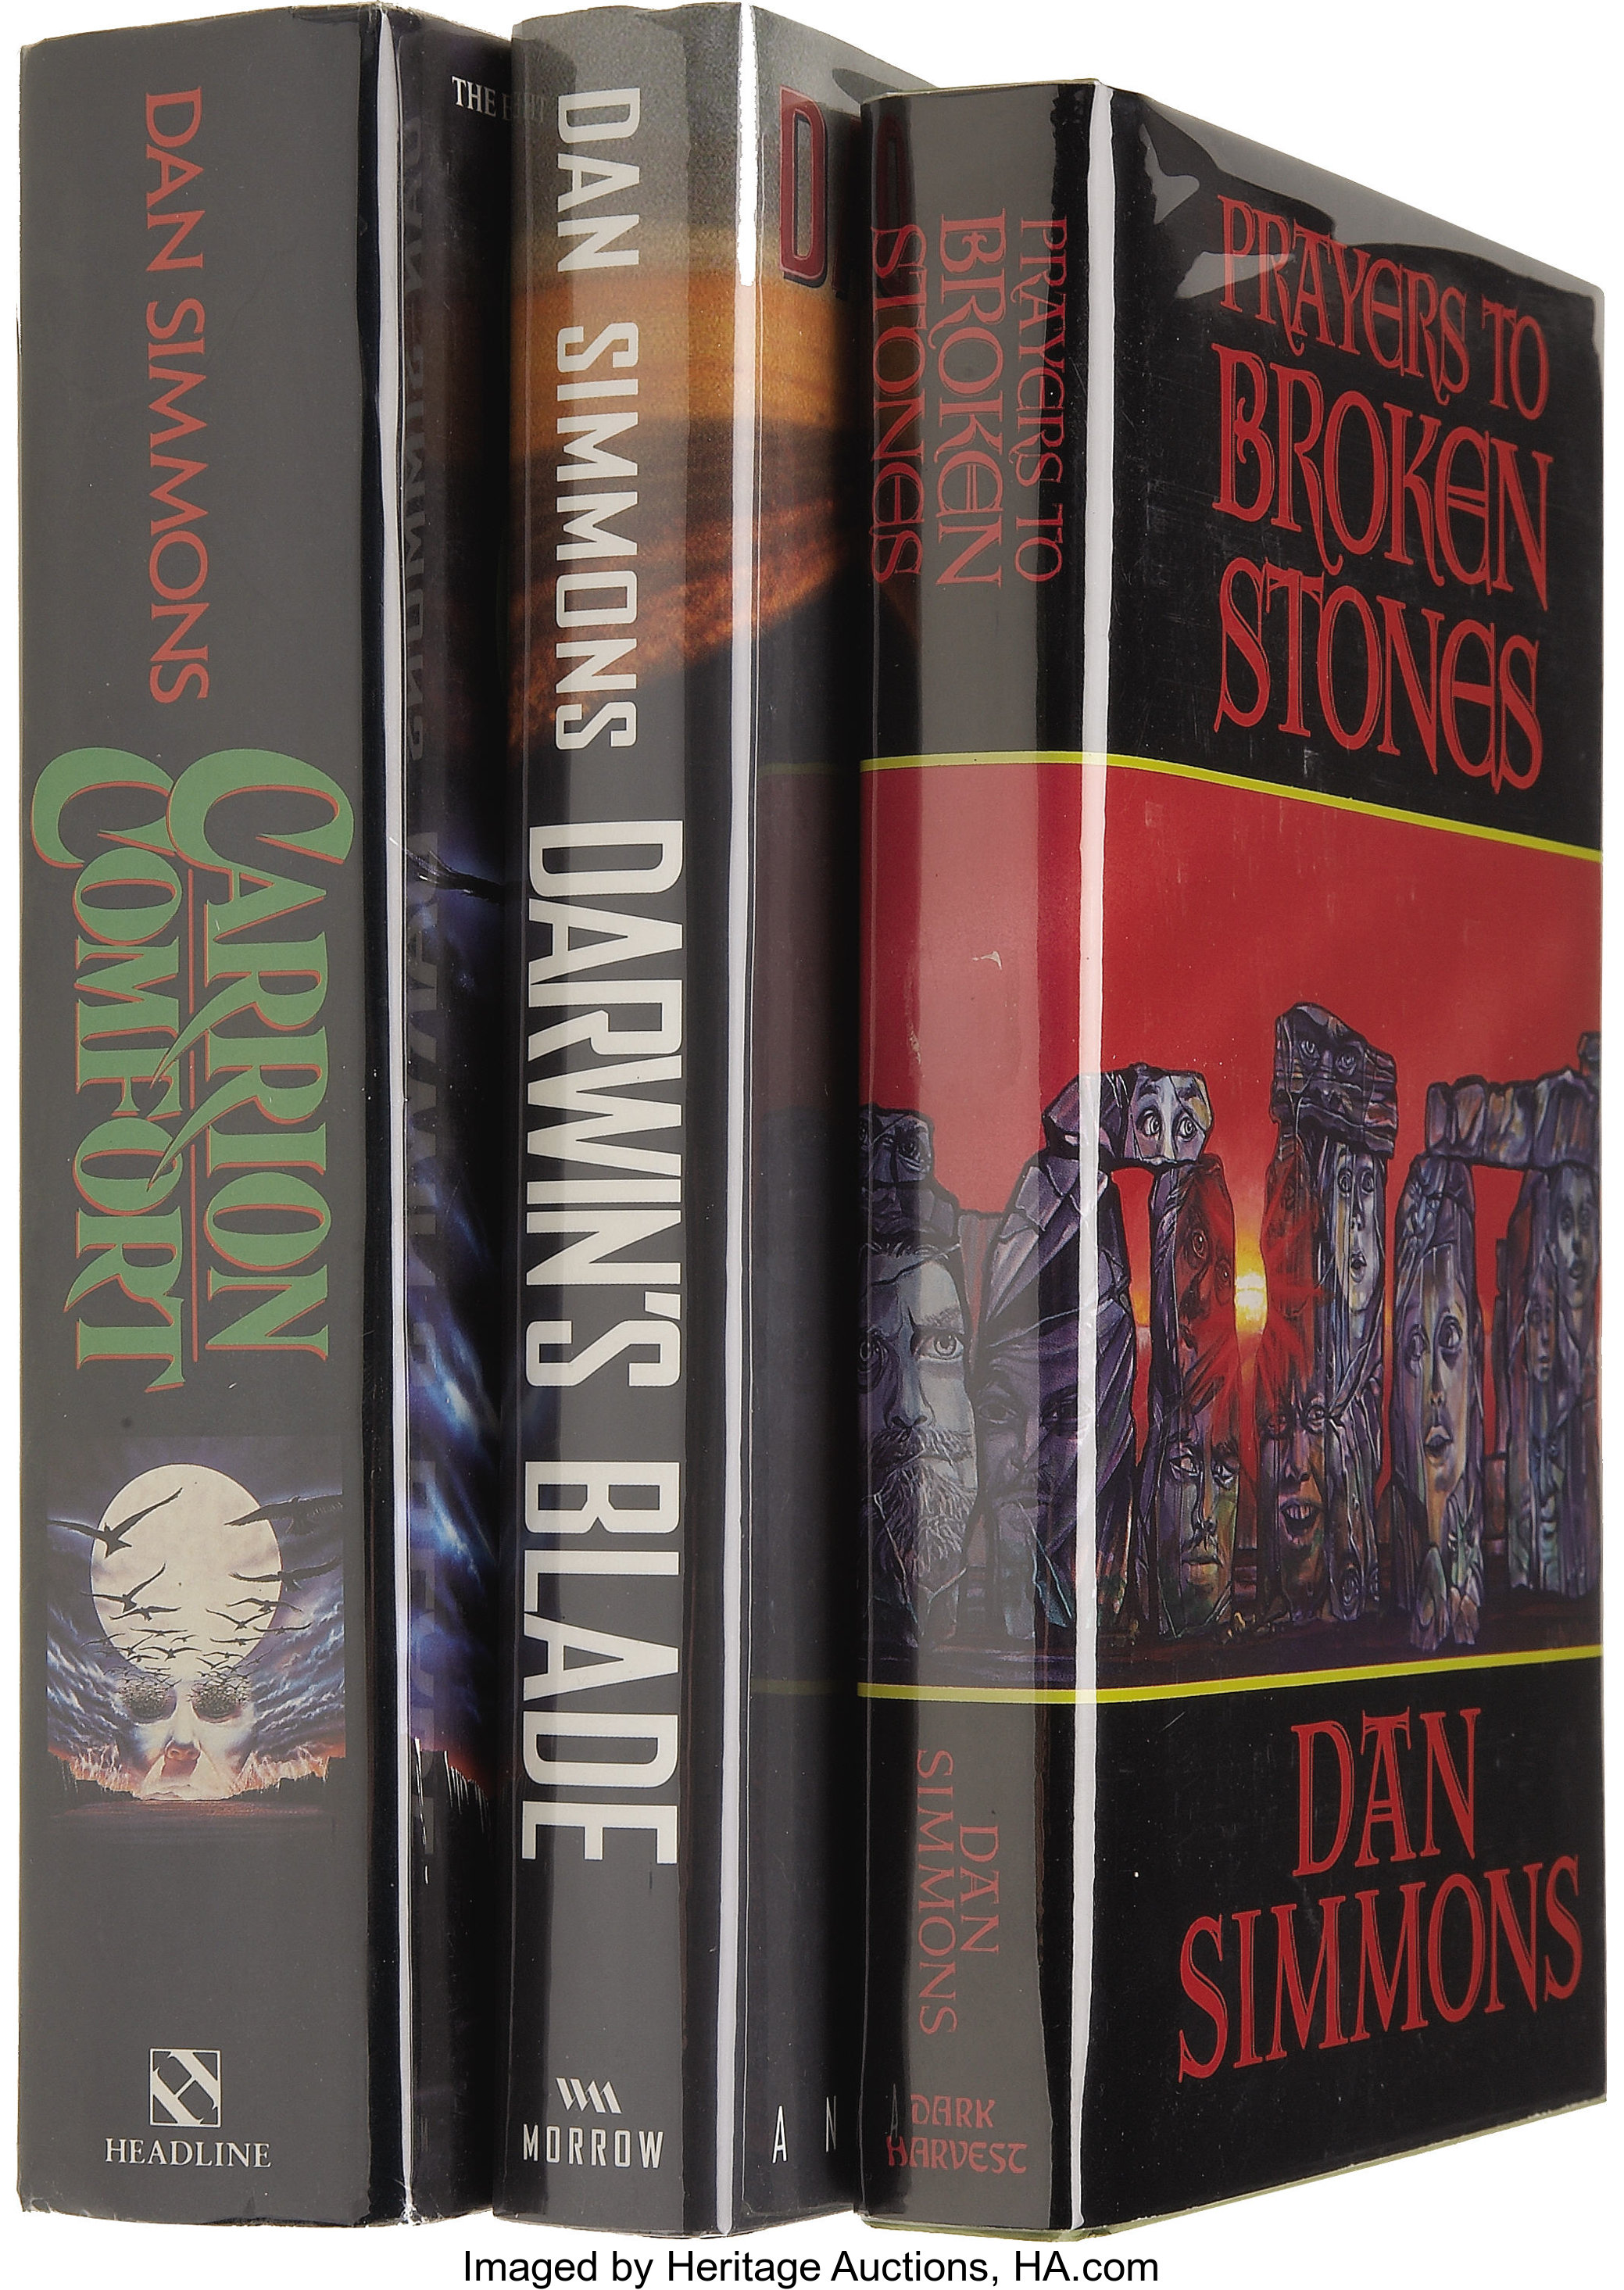 Dan Simmons Three Signed Books Total 3 Items Books Signed Lot 61658 Heritage Auctions